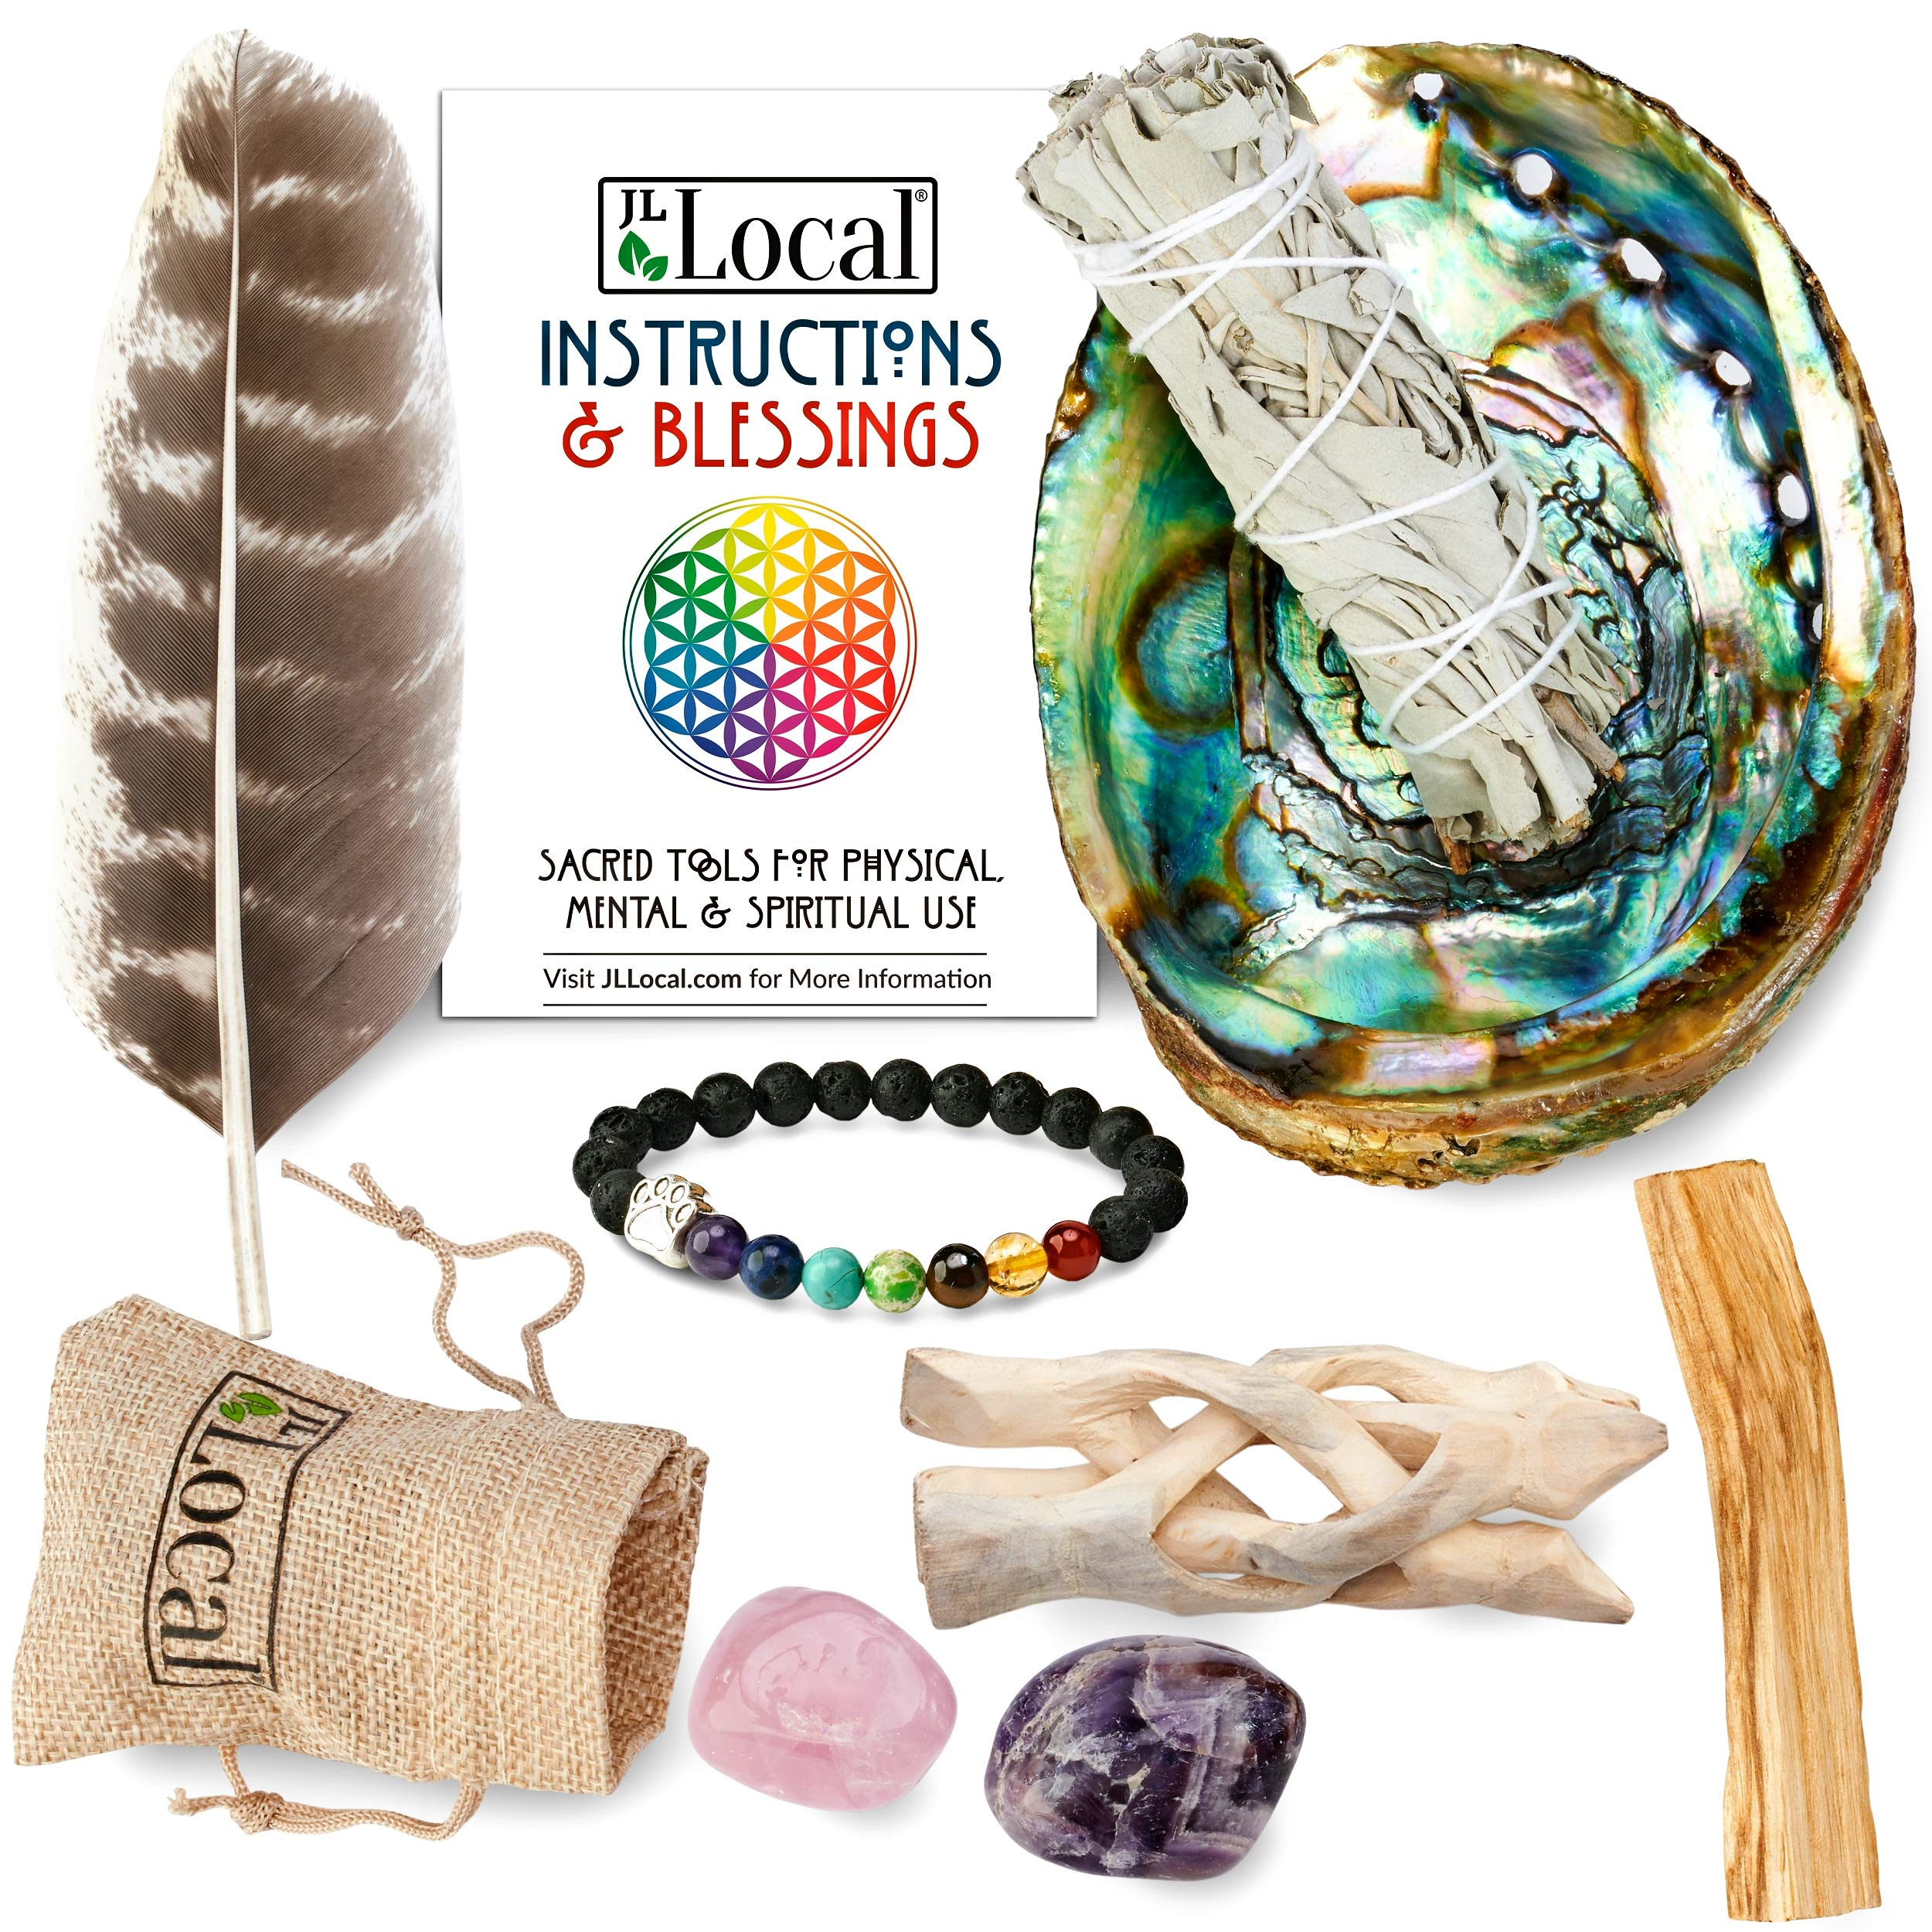 JL Local Chakra Smudging Kit - 10 Items Including White Sage Smudge Sticks, Palo Santo, Amethyst, Rose Quartz, Abalone Shell, Stand & Gift by JL Local